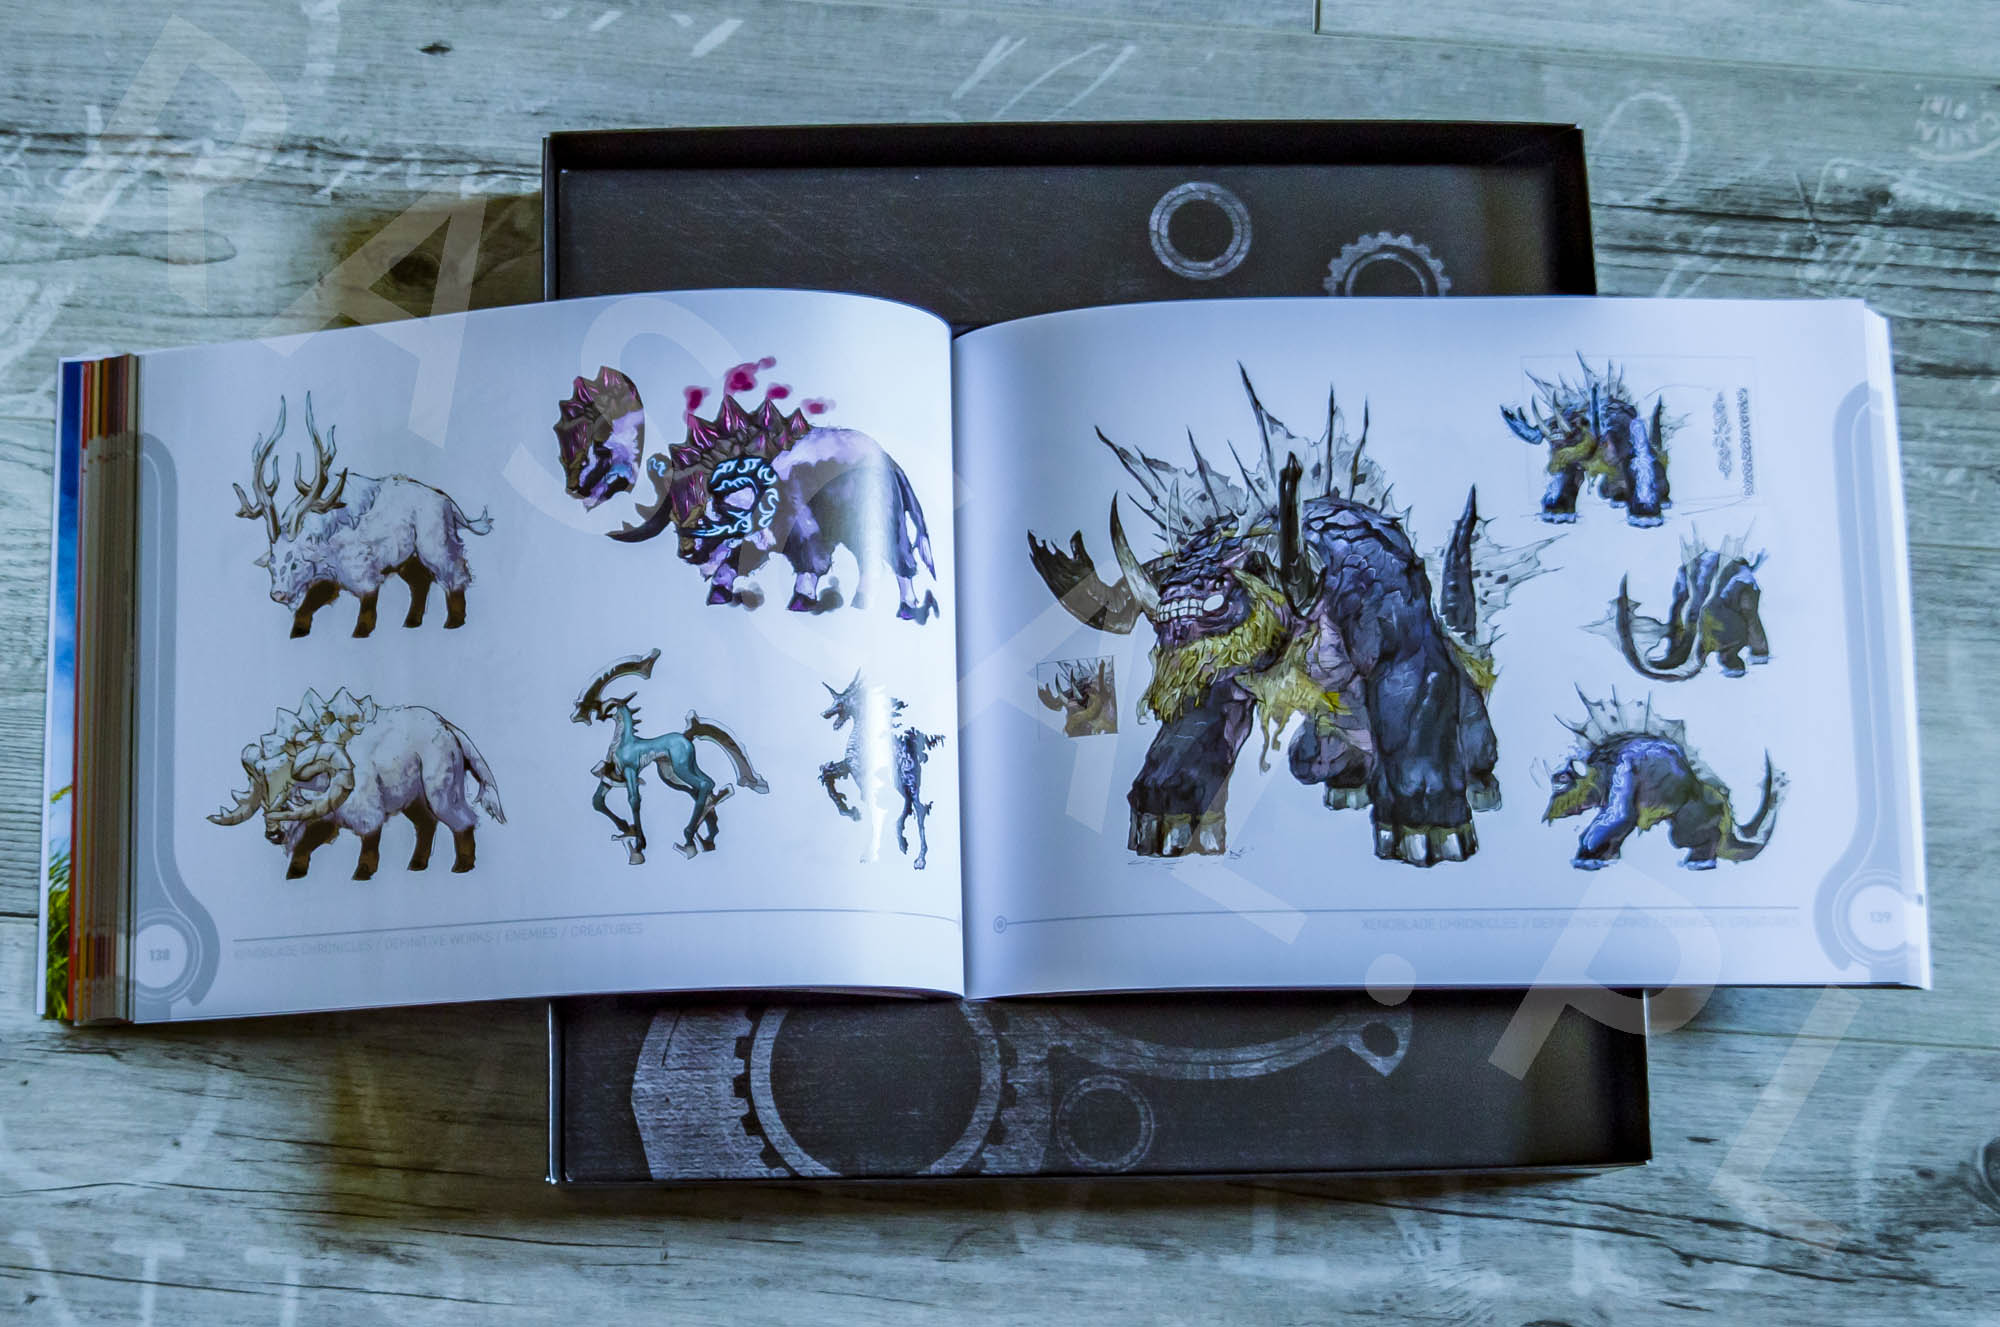 Xenoblade Chronicles Definitive Edition Collectors Set - Artbook - 16 - Wrogowie